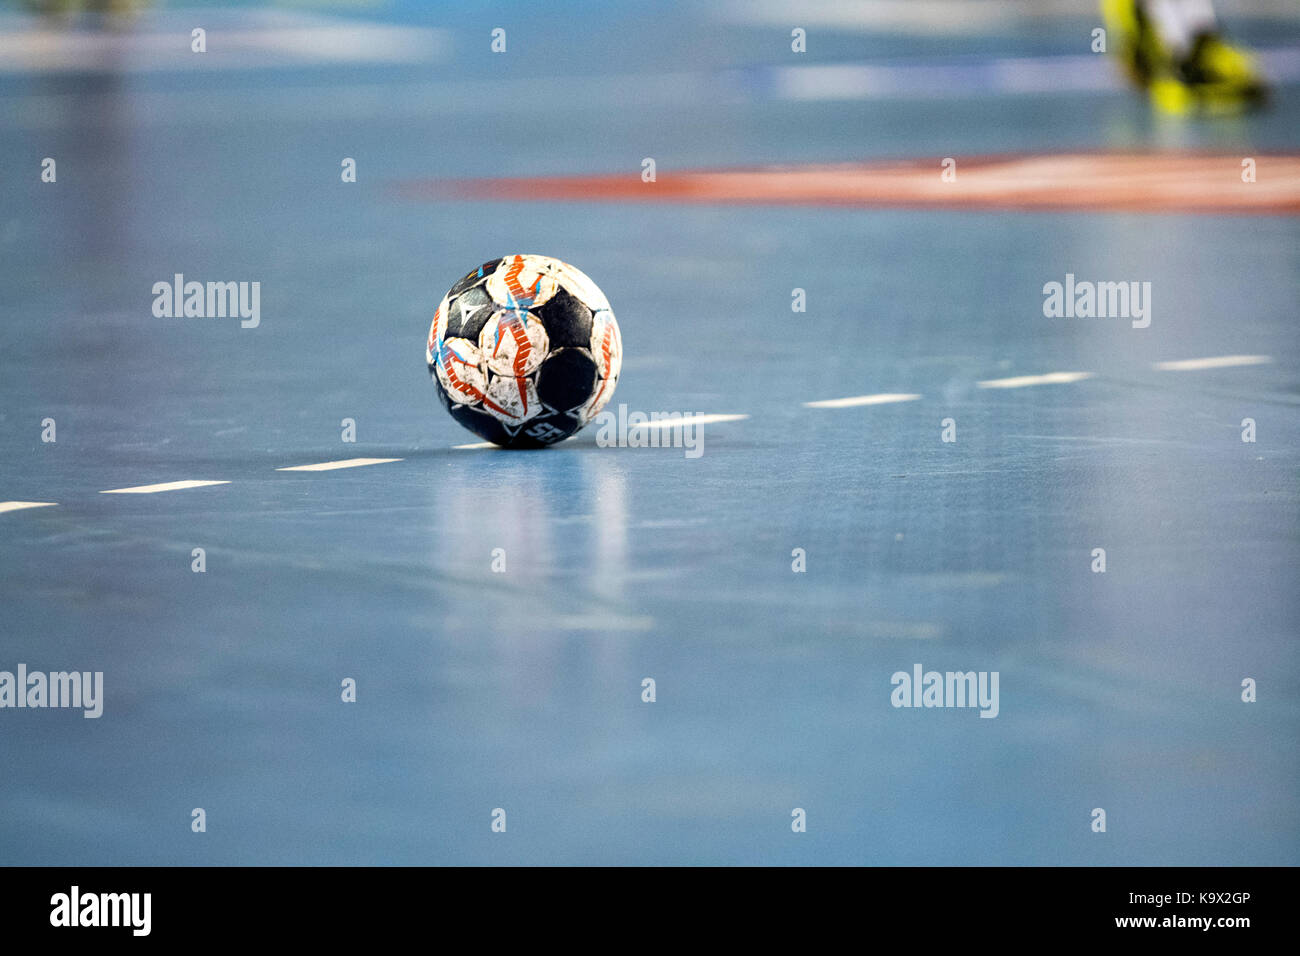 Leon, Spain. 24th September, 2017. The ball of the match during the handball match of 2017/2018 EHF Champions League - Stock Image